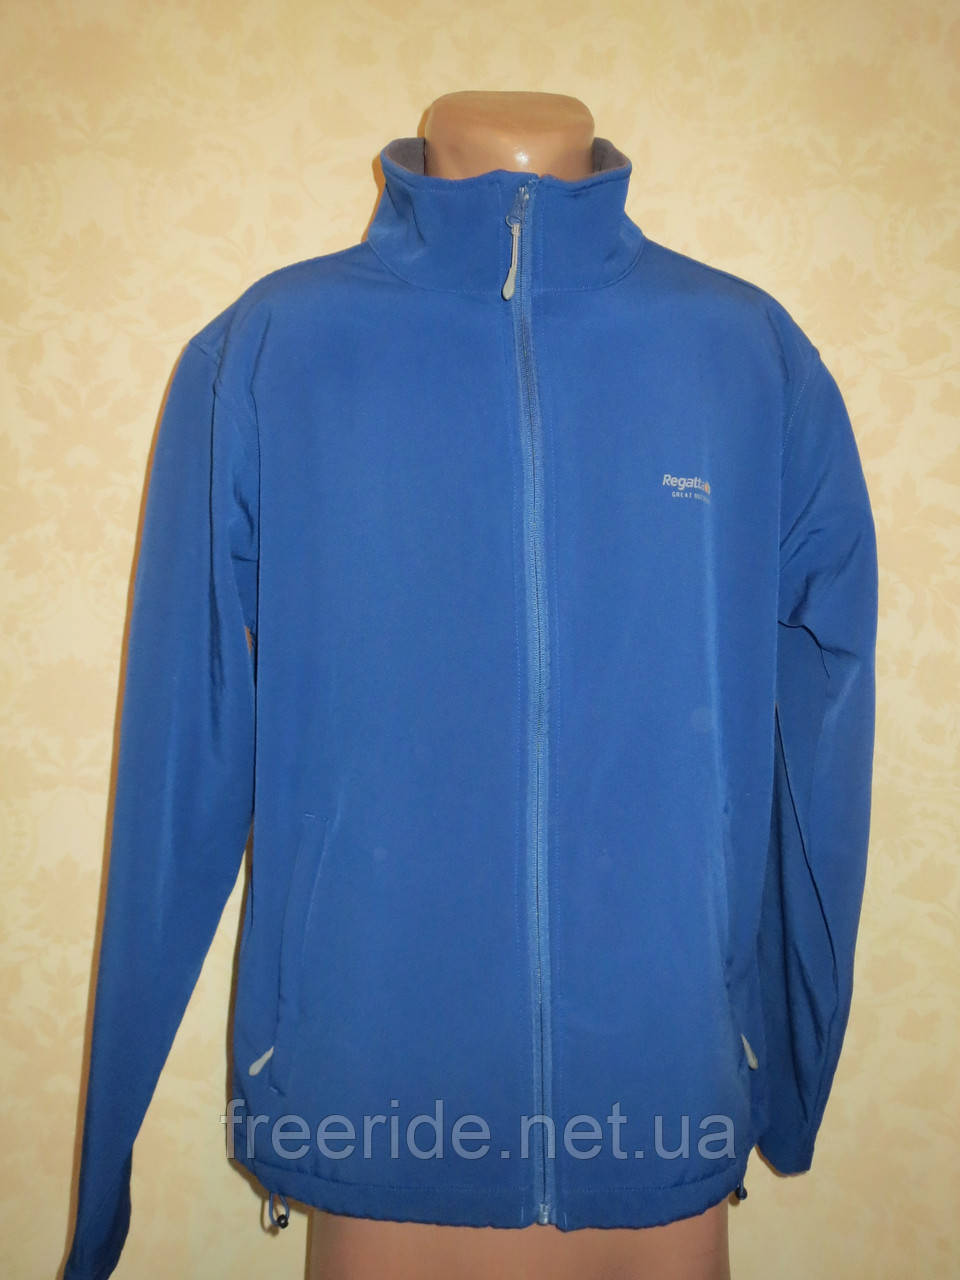 Софтшелл Regatta softshell (XL) утепленный